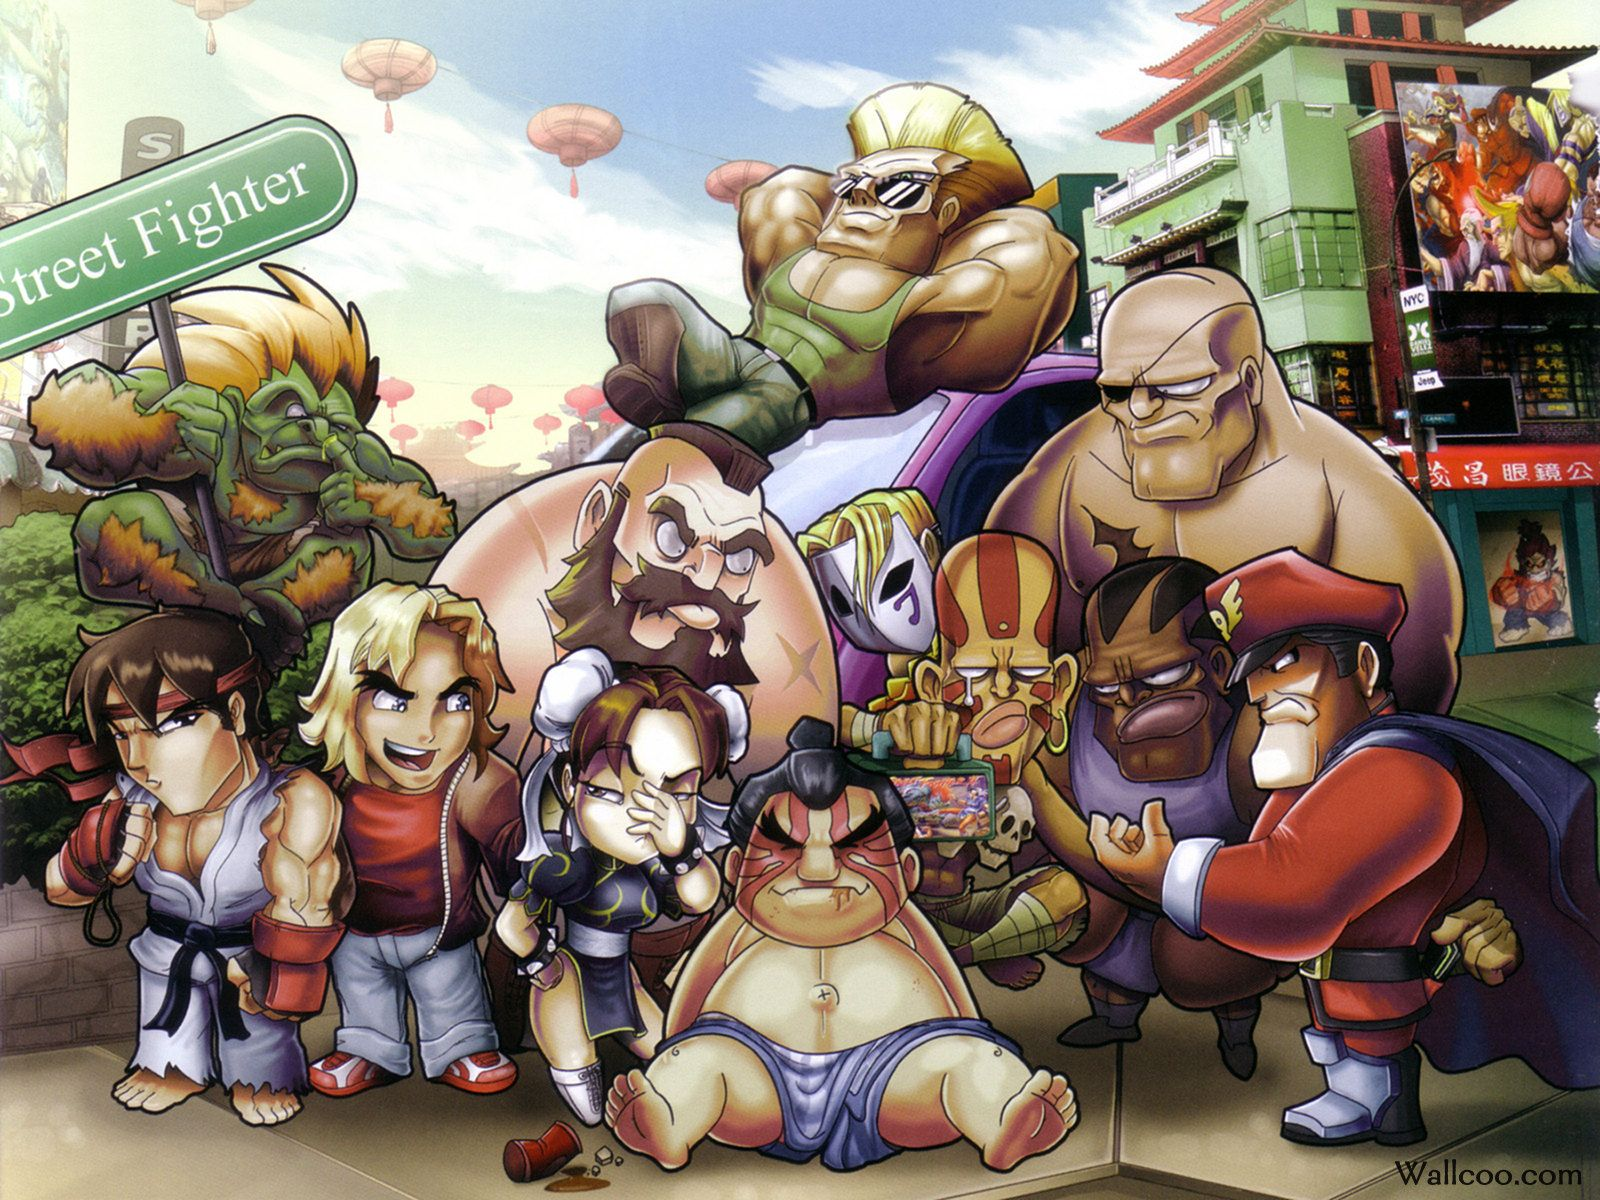 Anime Street Fighter Wallpapers - Top Free Anime Street